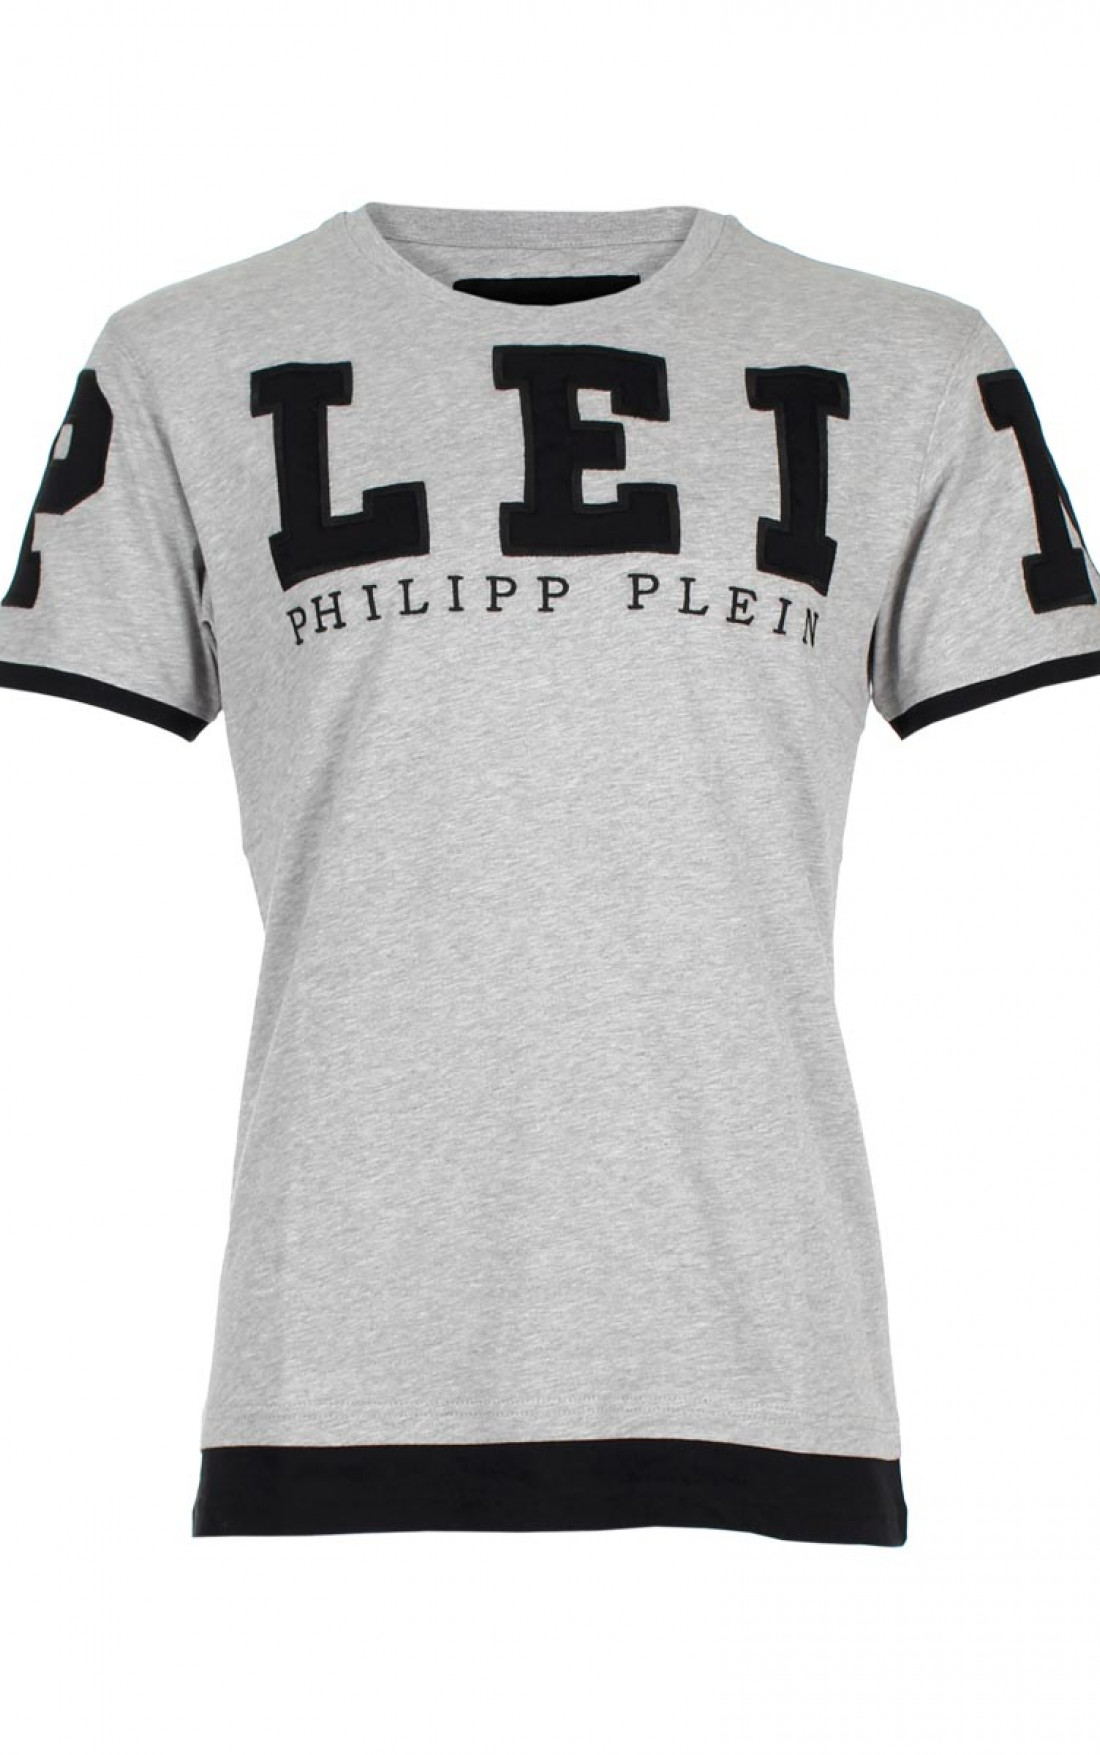 philipp plein 39 plein 39 t shirt grey mens t shirt boudi fashion 98 new bond st london w1s. Black Bedroom Furniture Sets. Home Design Ideas